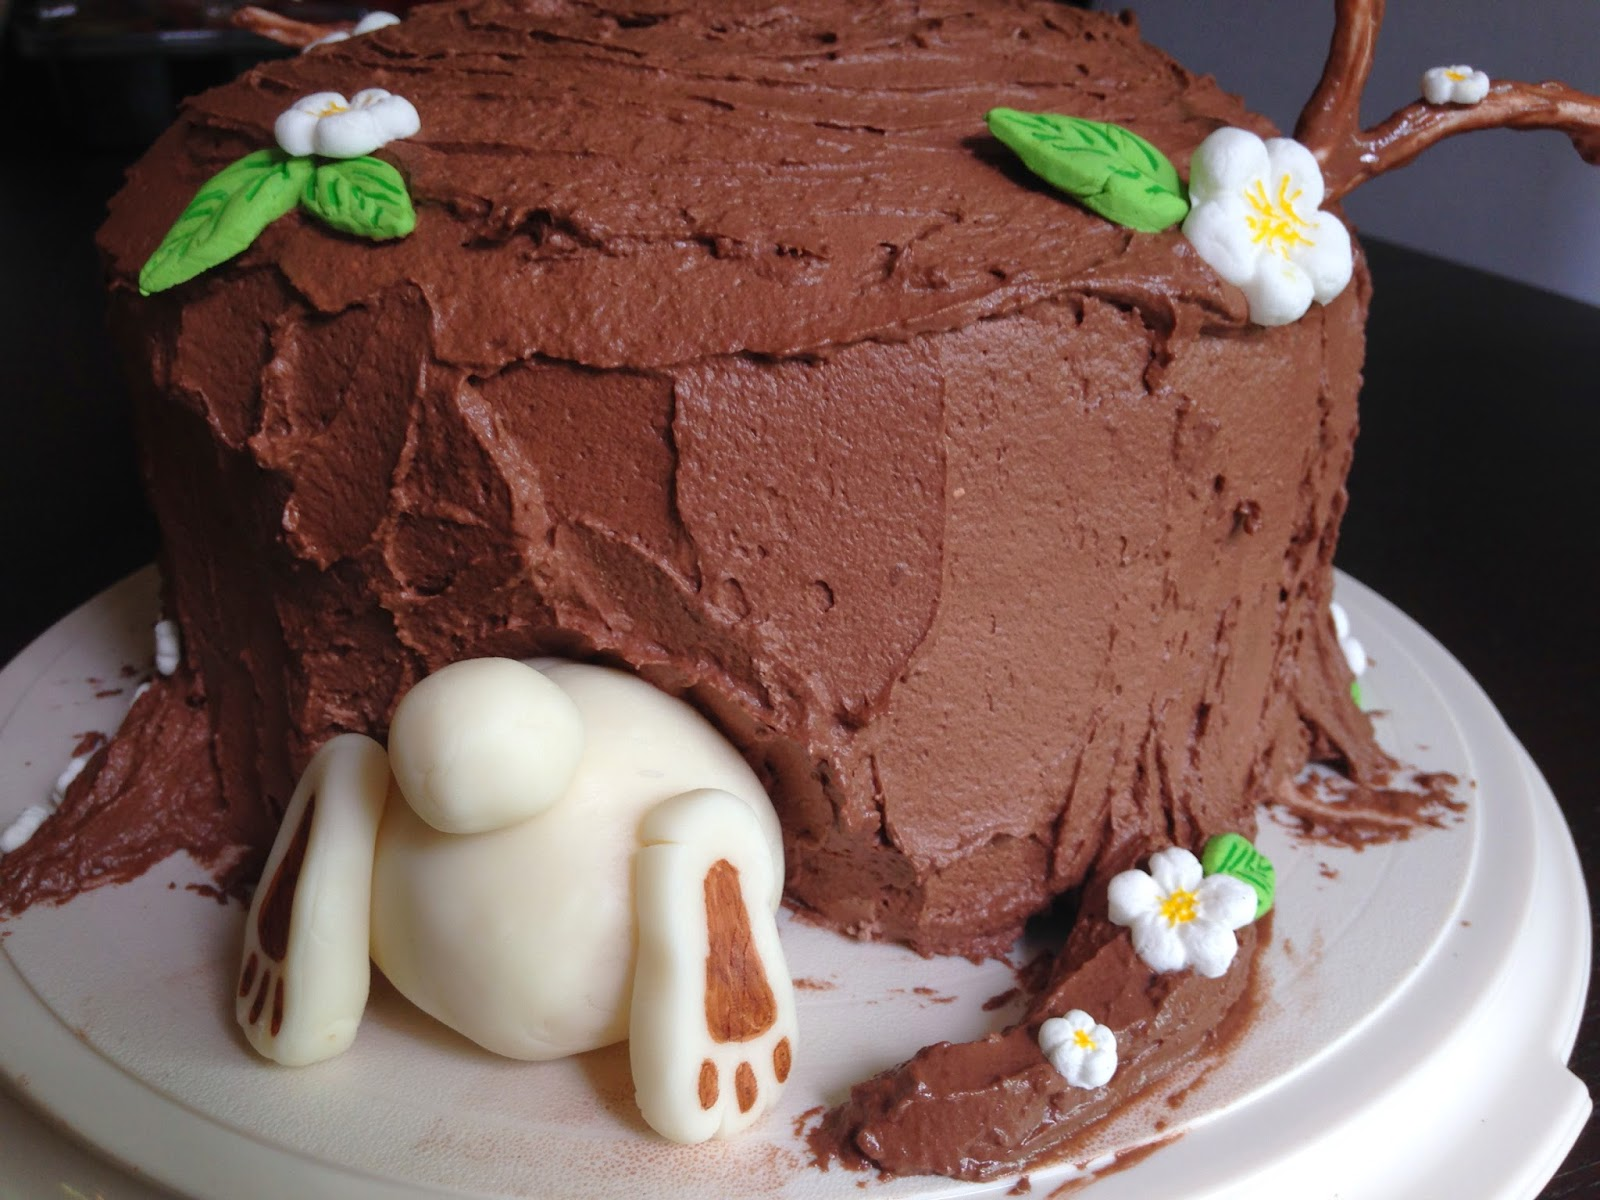 Tansy Dolls The Bunny Butt Cake